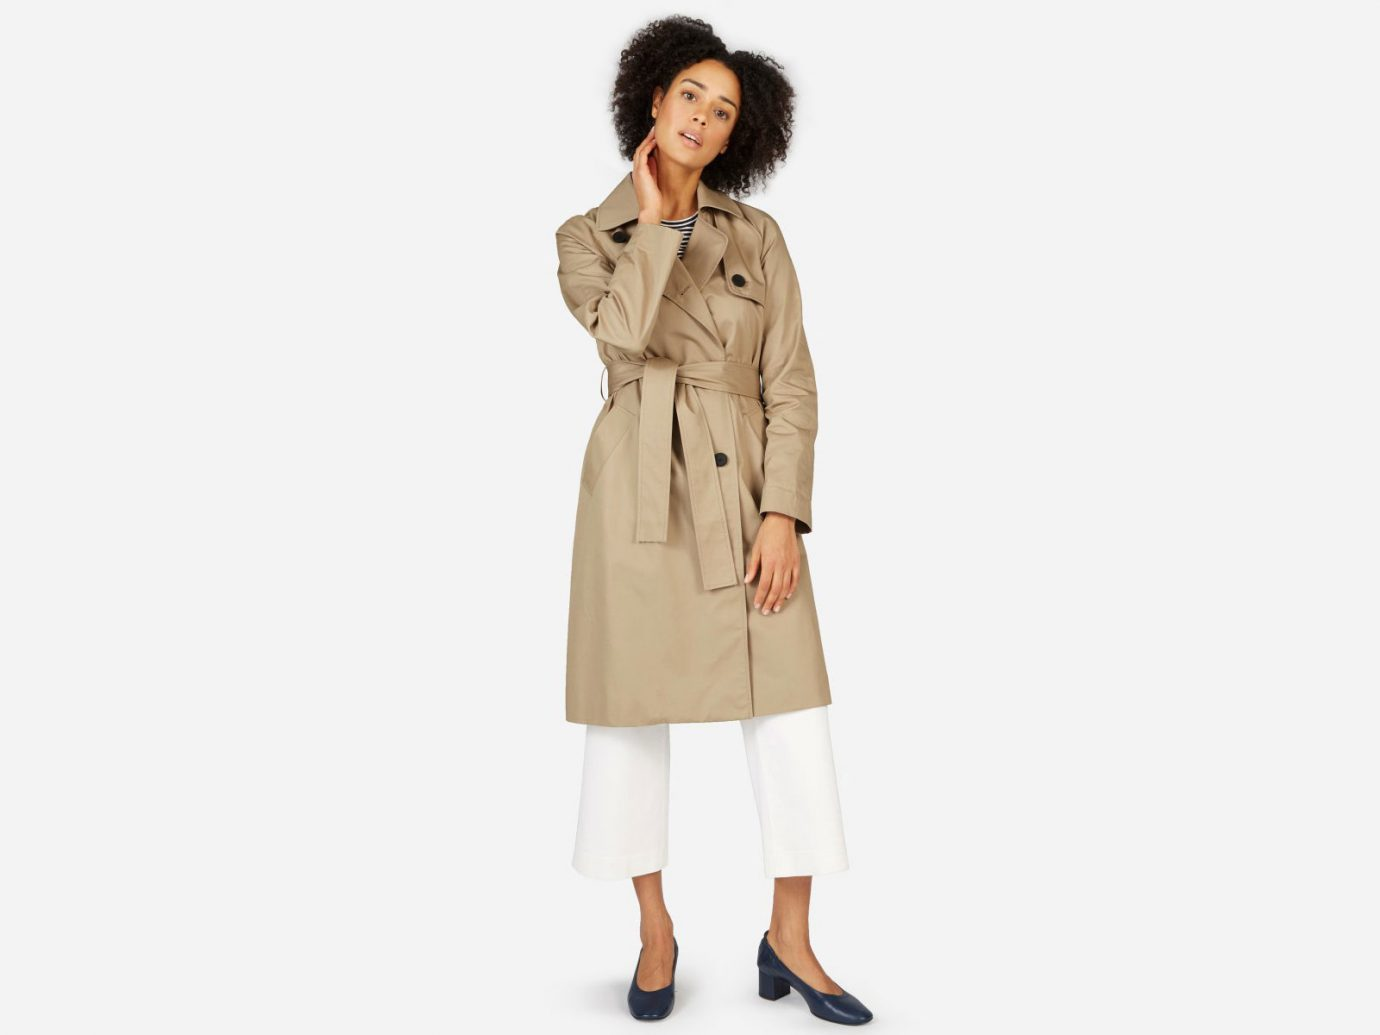 The Drape Trench Coat